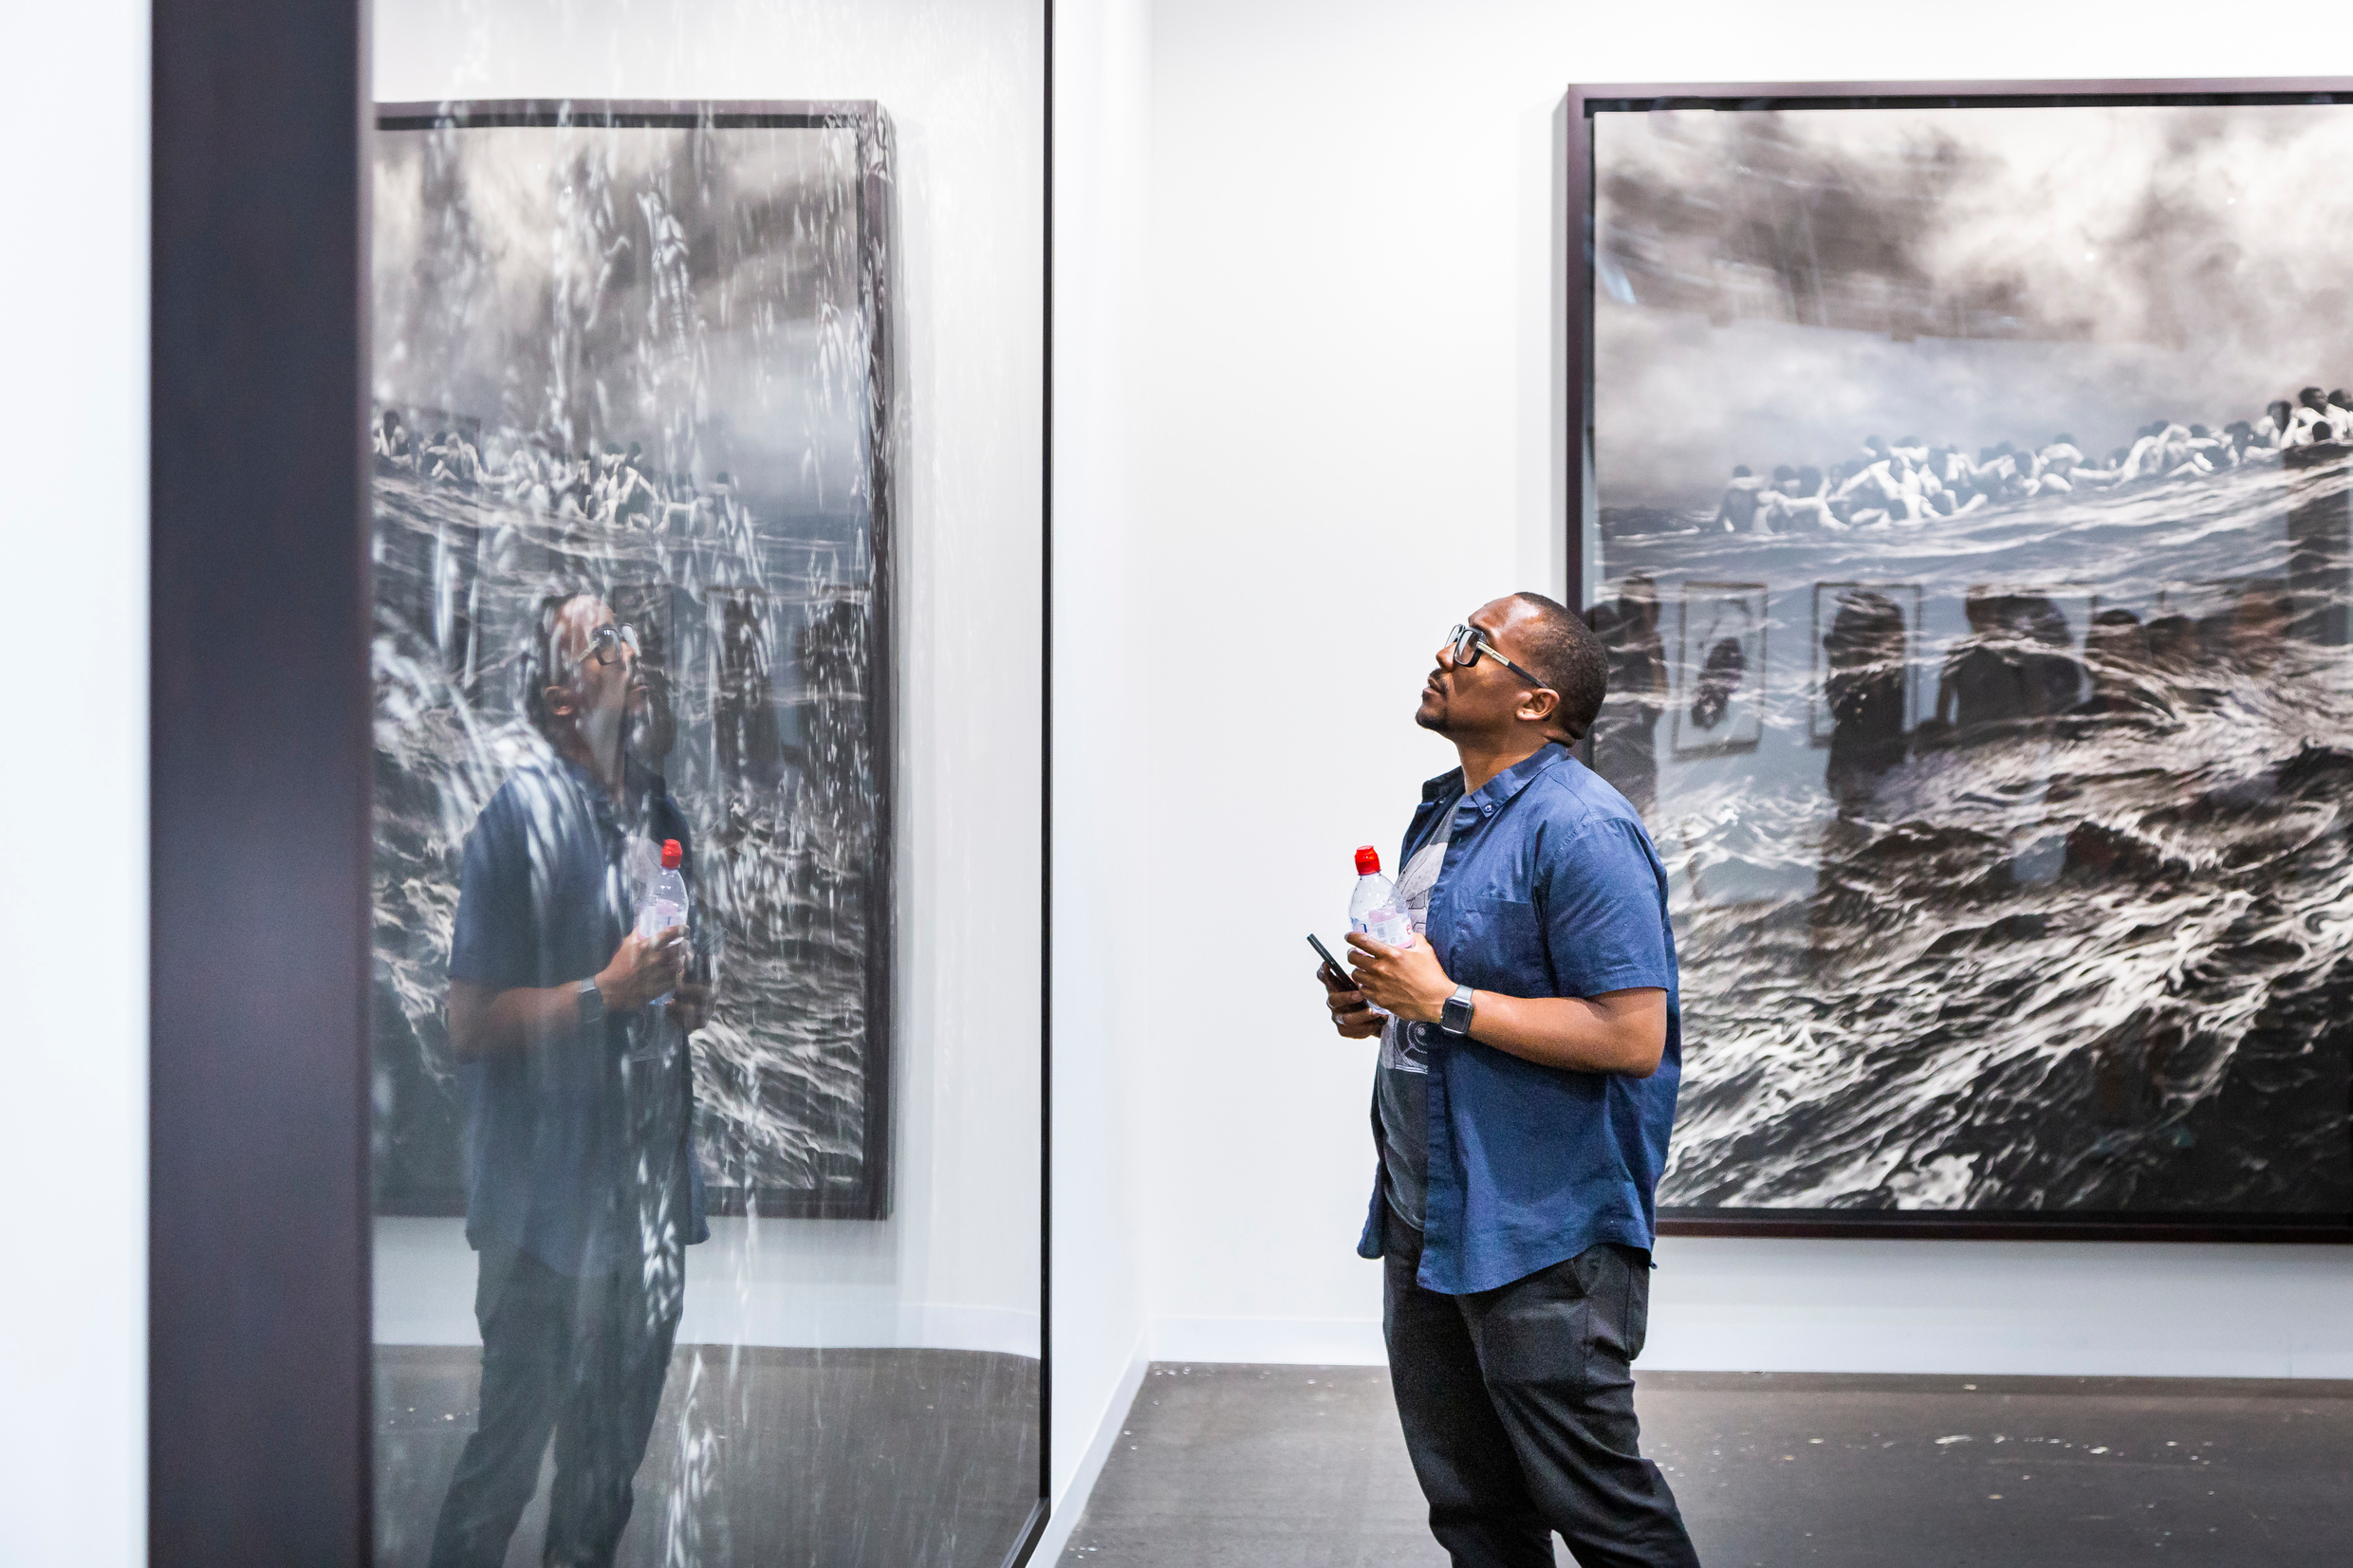 Metro Pictures gallery space at Art Basel 2018 ⓒ Art Basel